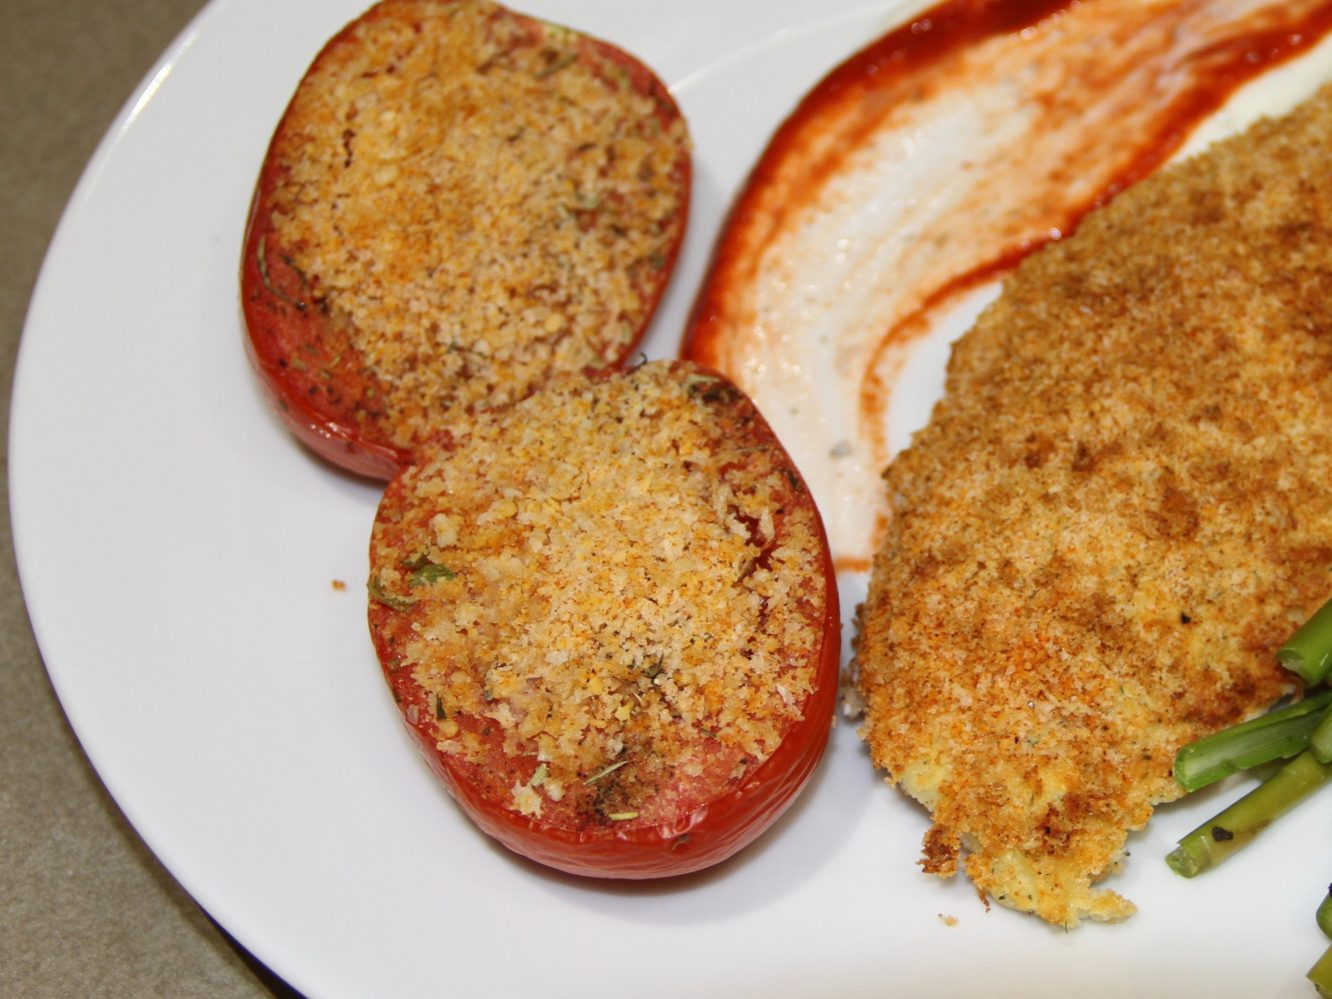 Plated Baked Tomatoes that was cooked in Air Fryer